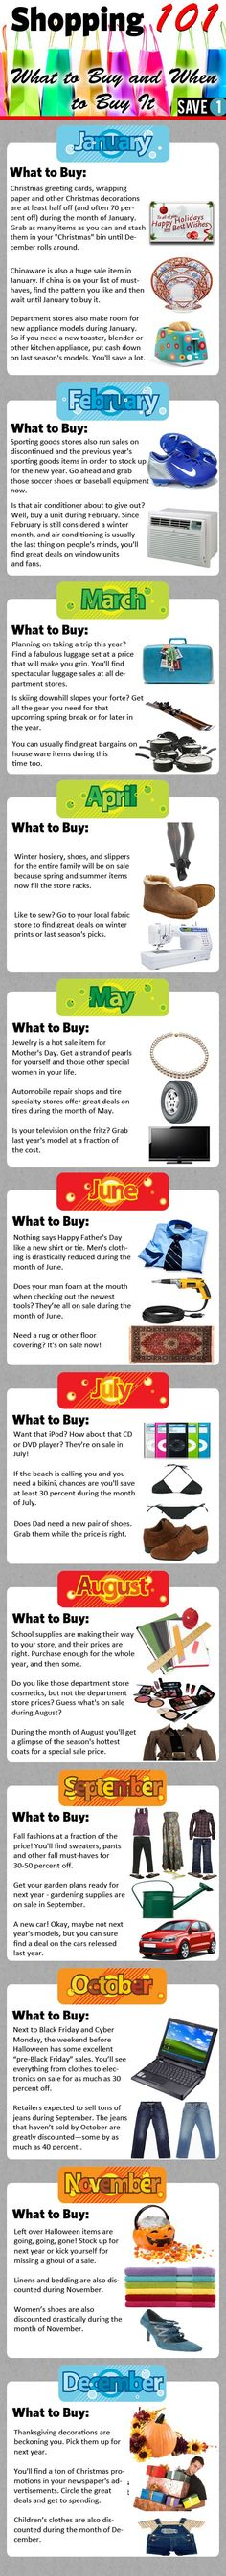 A guide that has a lot of tips on when to buy craft supplies and tools!